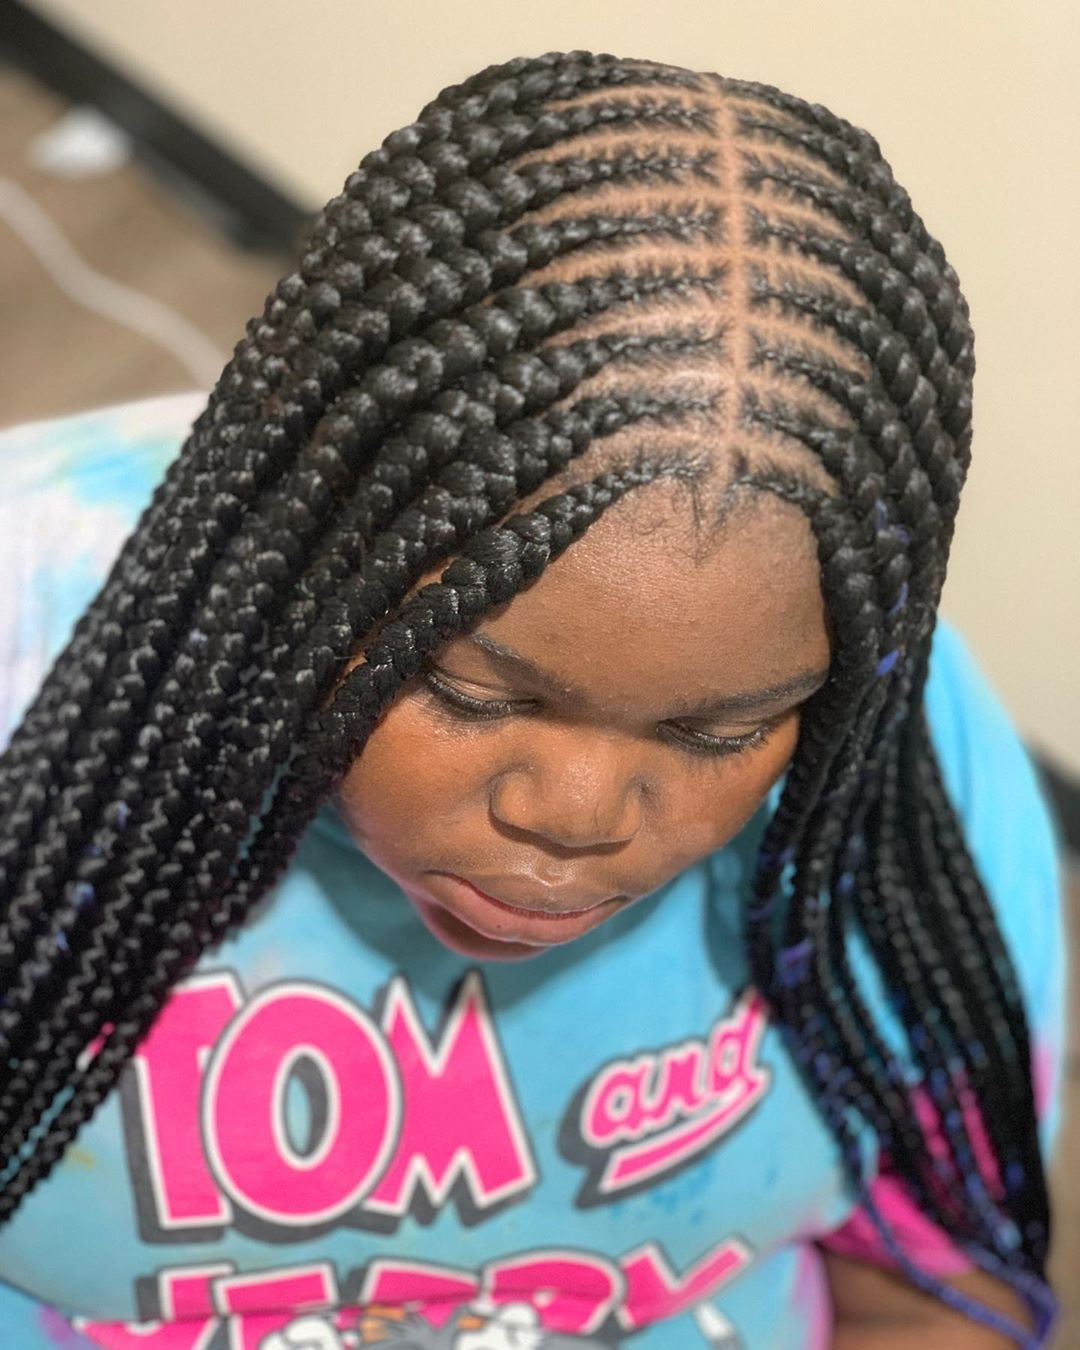 Cutest Hairstyles For Little Black Girls Little Girls Hairstyles African American Girls H Braids Hairstyles Pictures Braided Hairstyles Black Kids Hairstyles